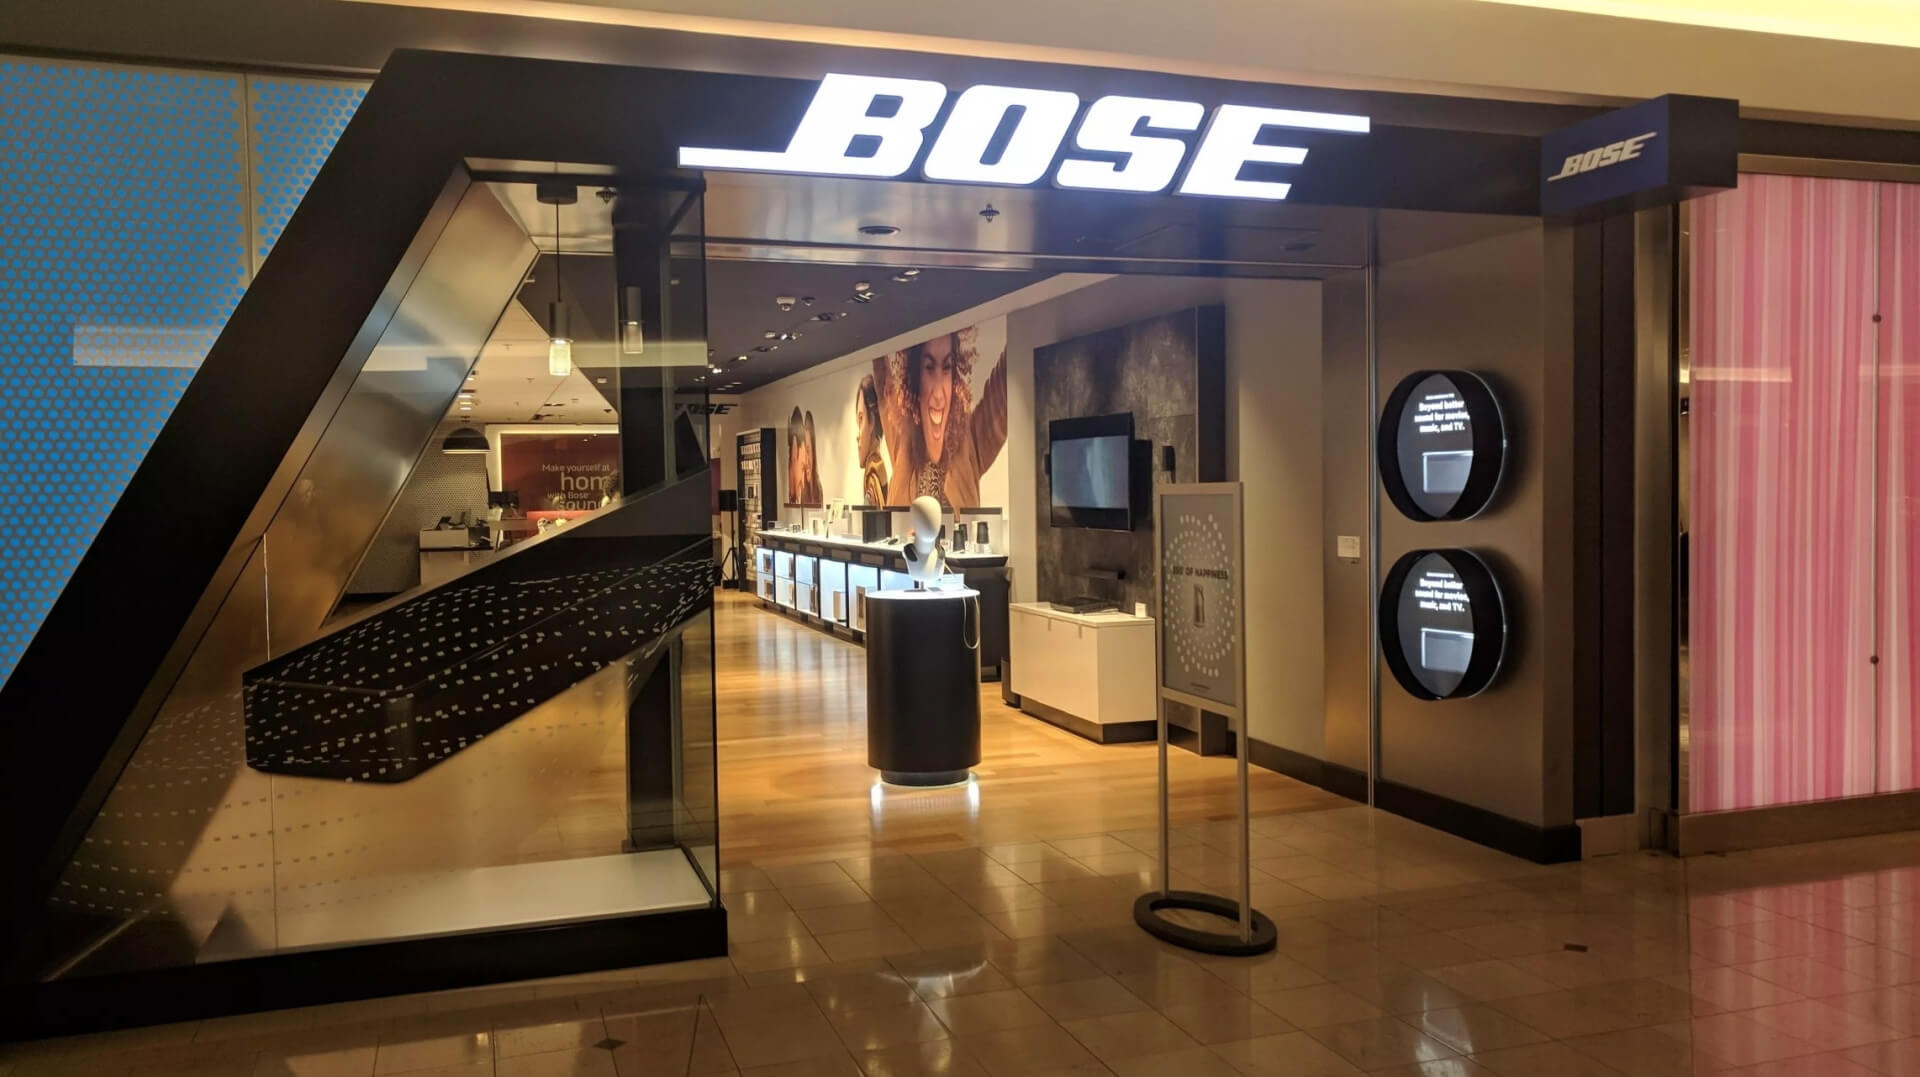 Bose is shutting down all of its 119 retail stores in North America, Europe, Japan, and Australia